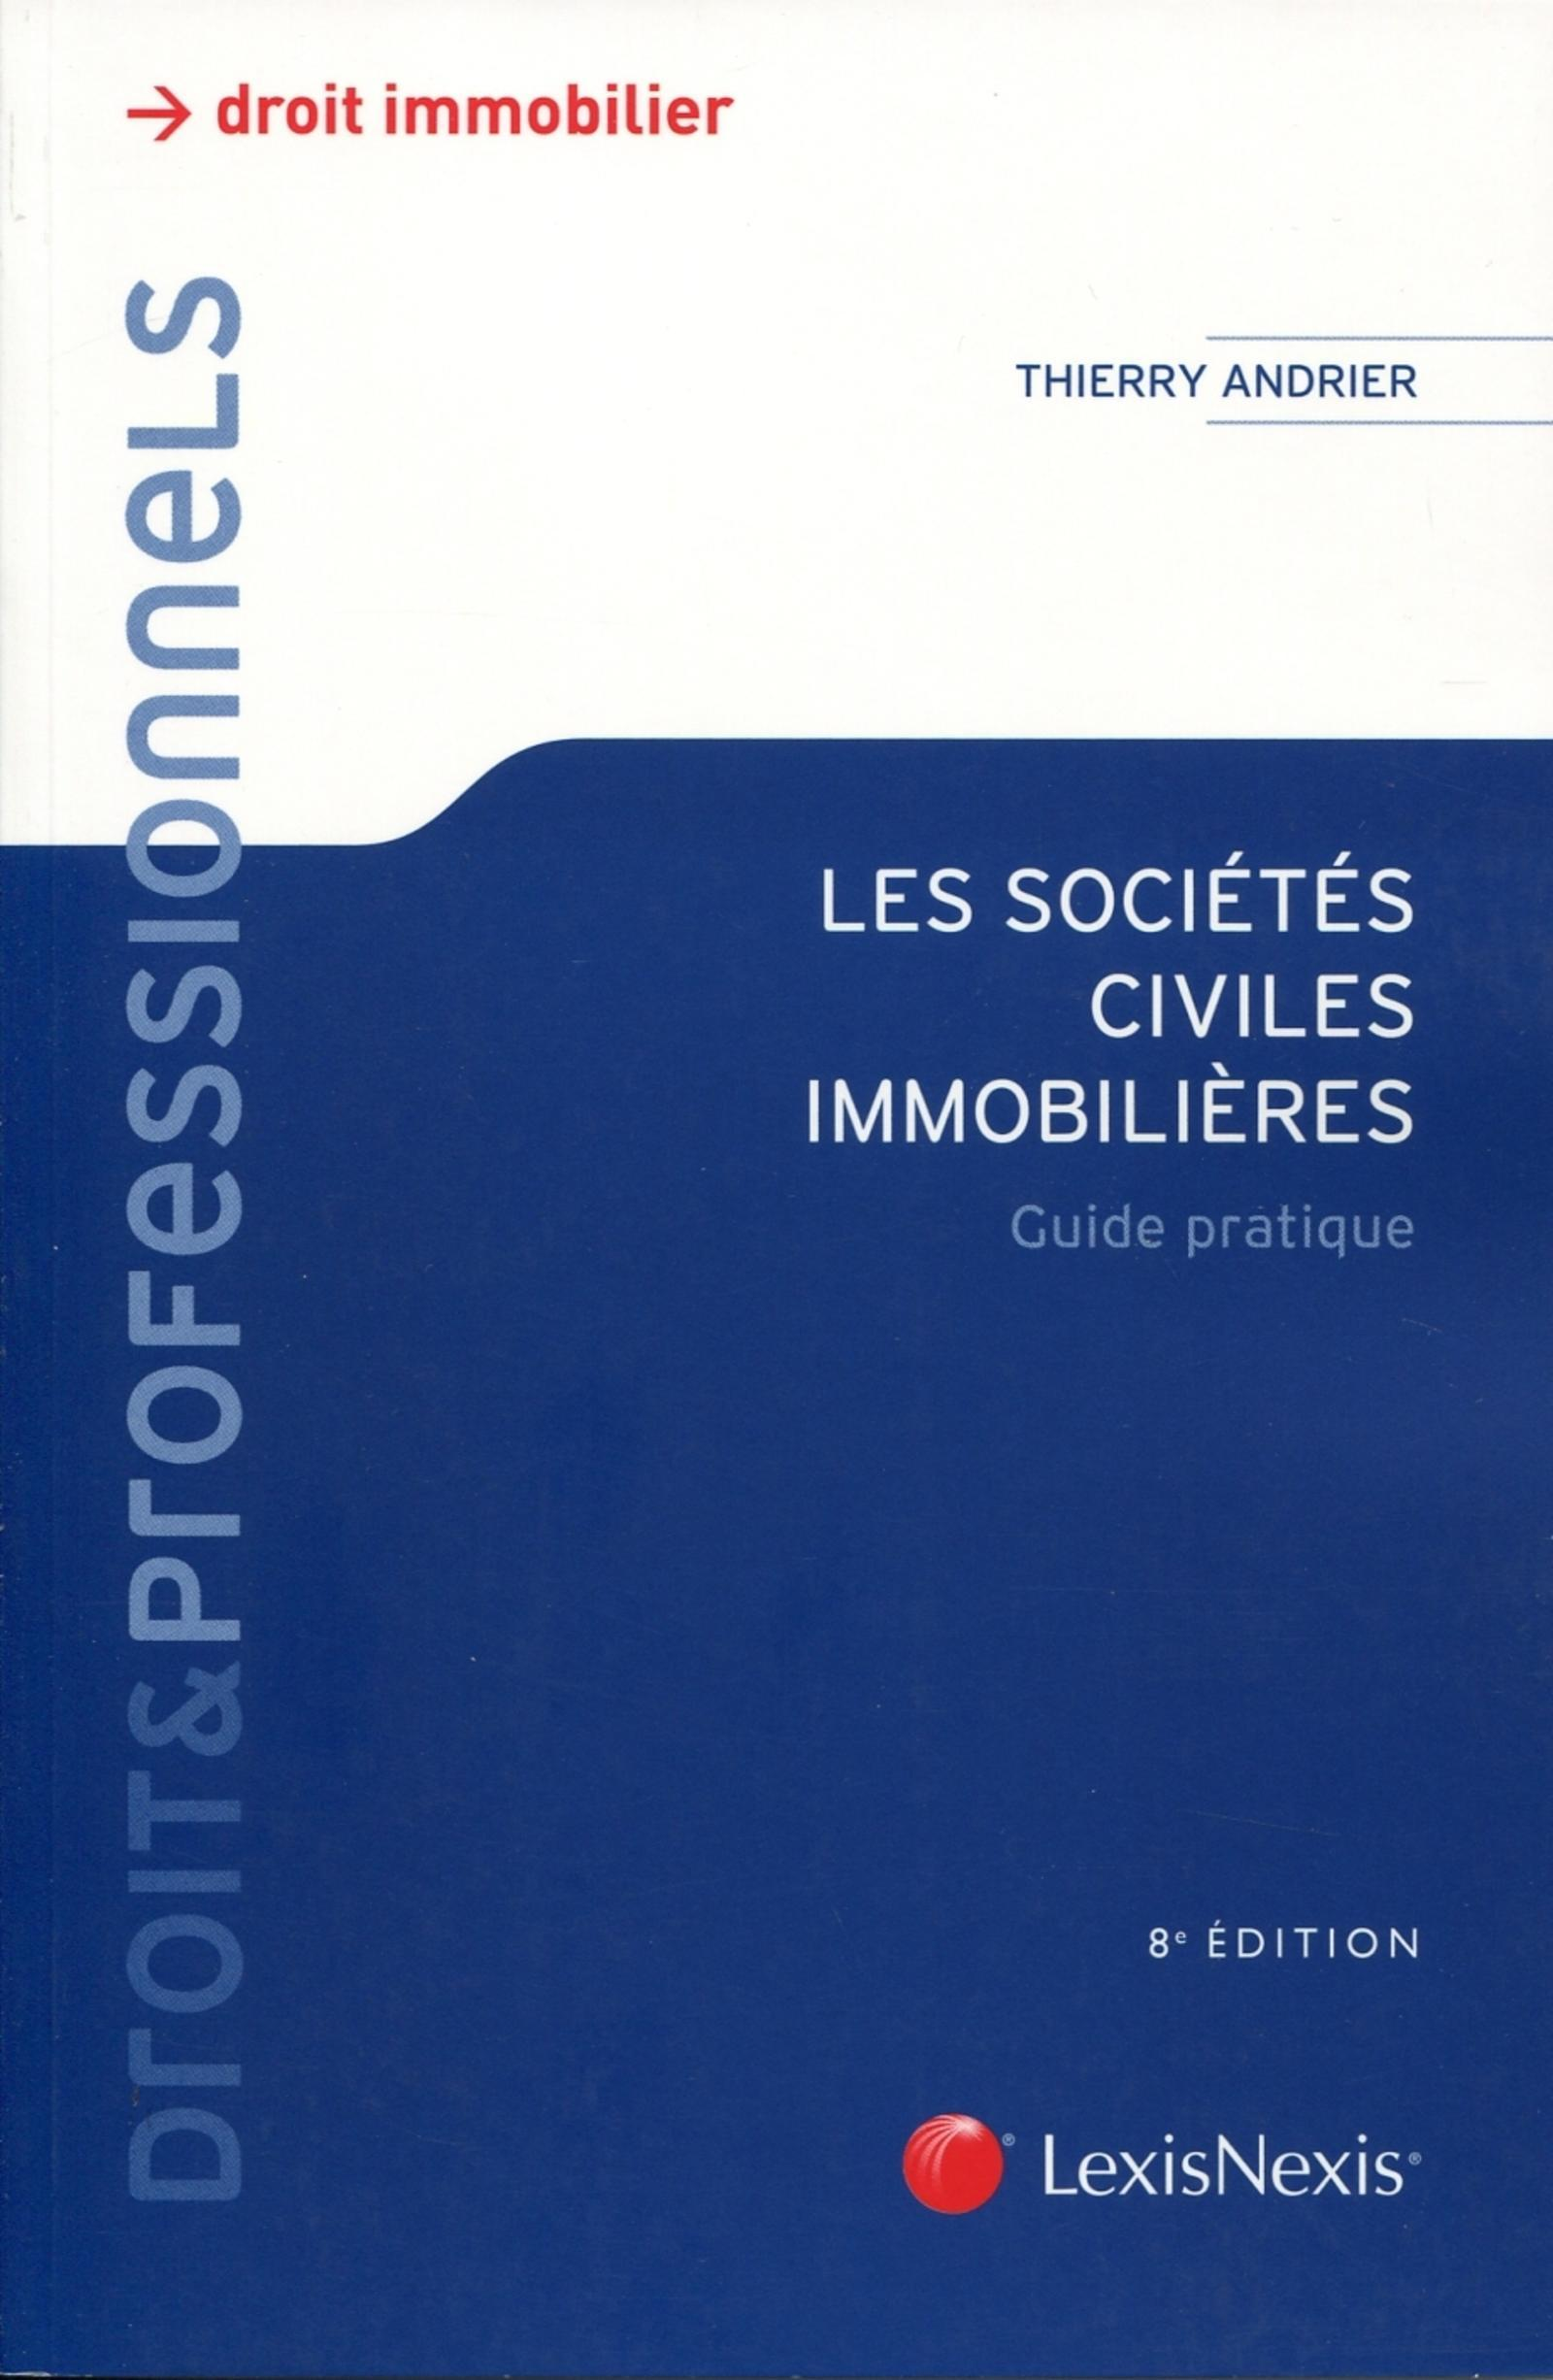 LES SOCIETES CIVILES IMMOBILIERES. GUIDE PRATIQUE - LE GUIDE.